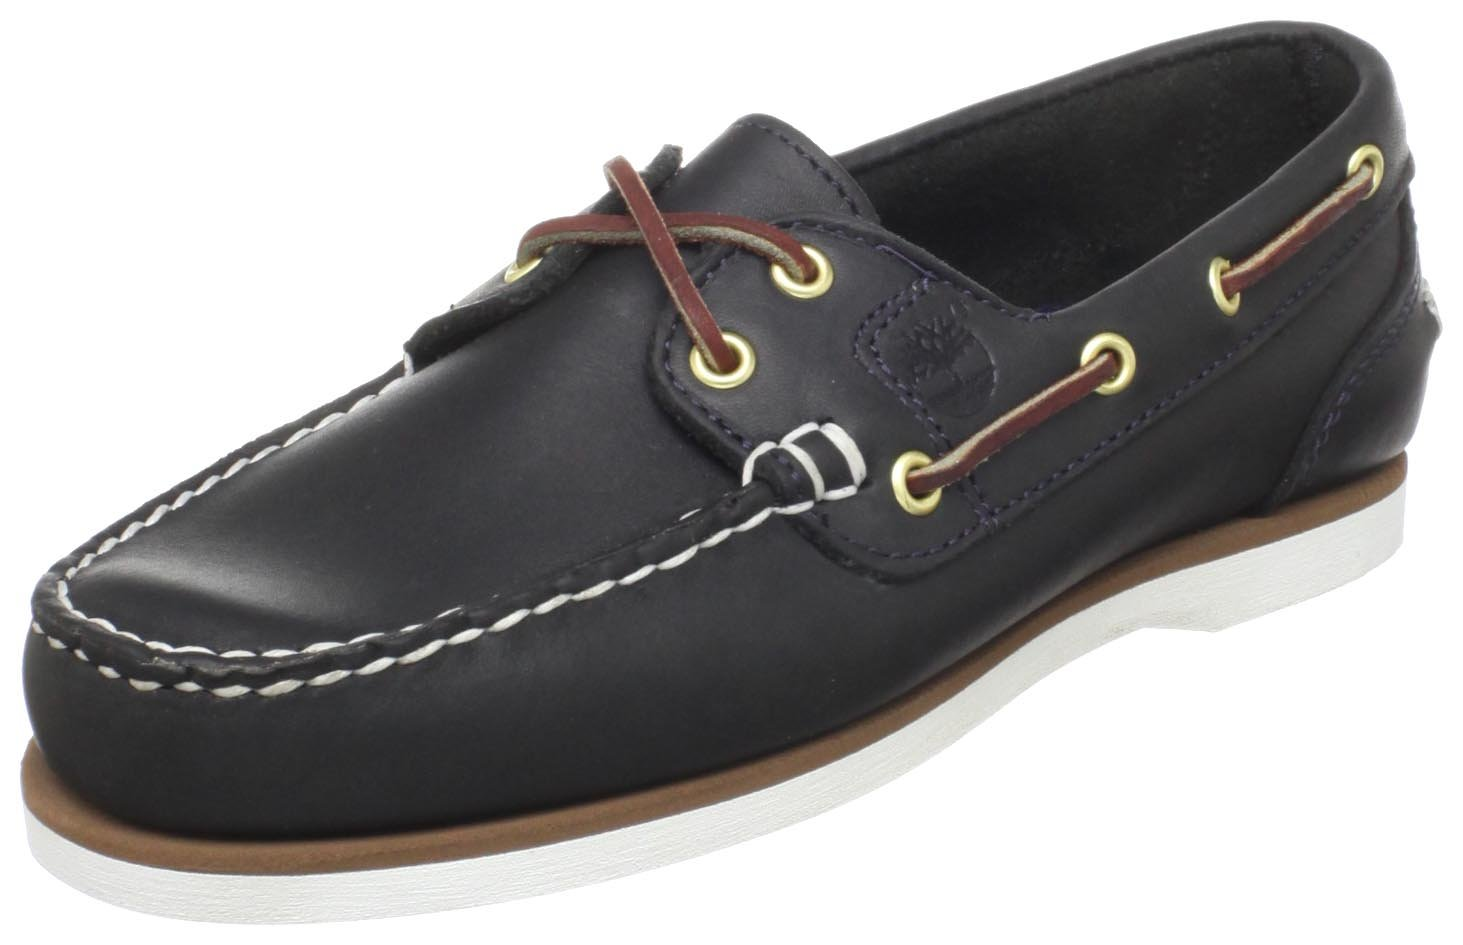 Timberland Women's Amherst Boat Shoe,Boat Navy,9 M US